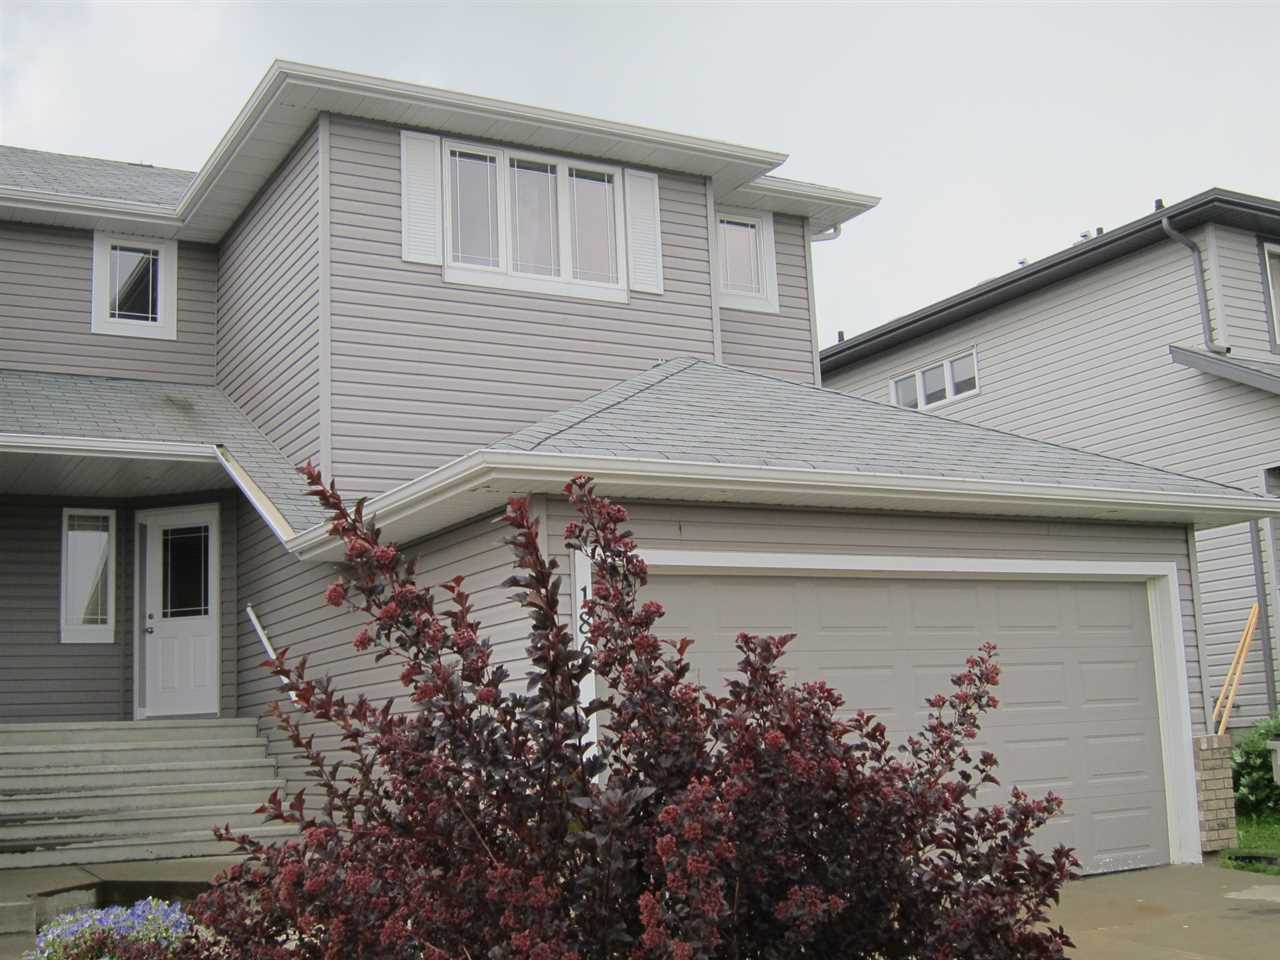 Main Photo: 186 BROOKVIEW Way: Stony Plain House Half Duplex for sale : MLS® # E4076869